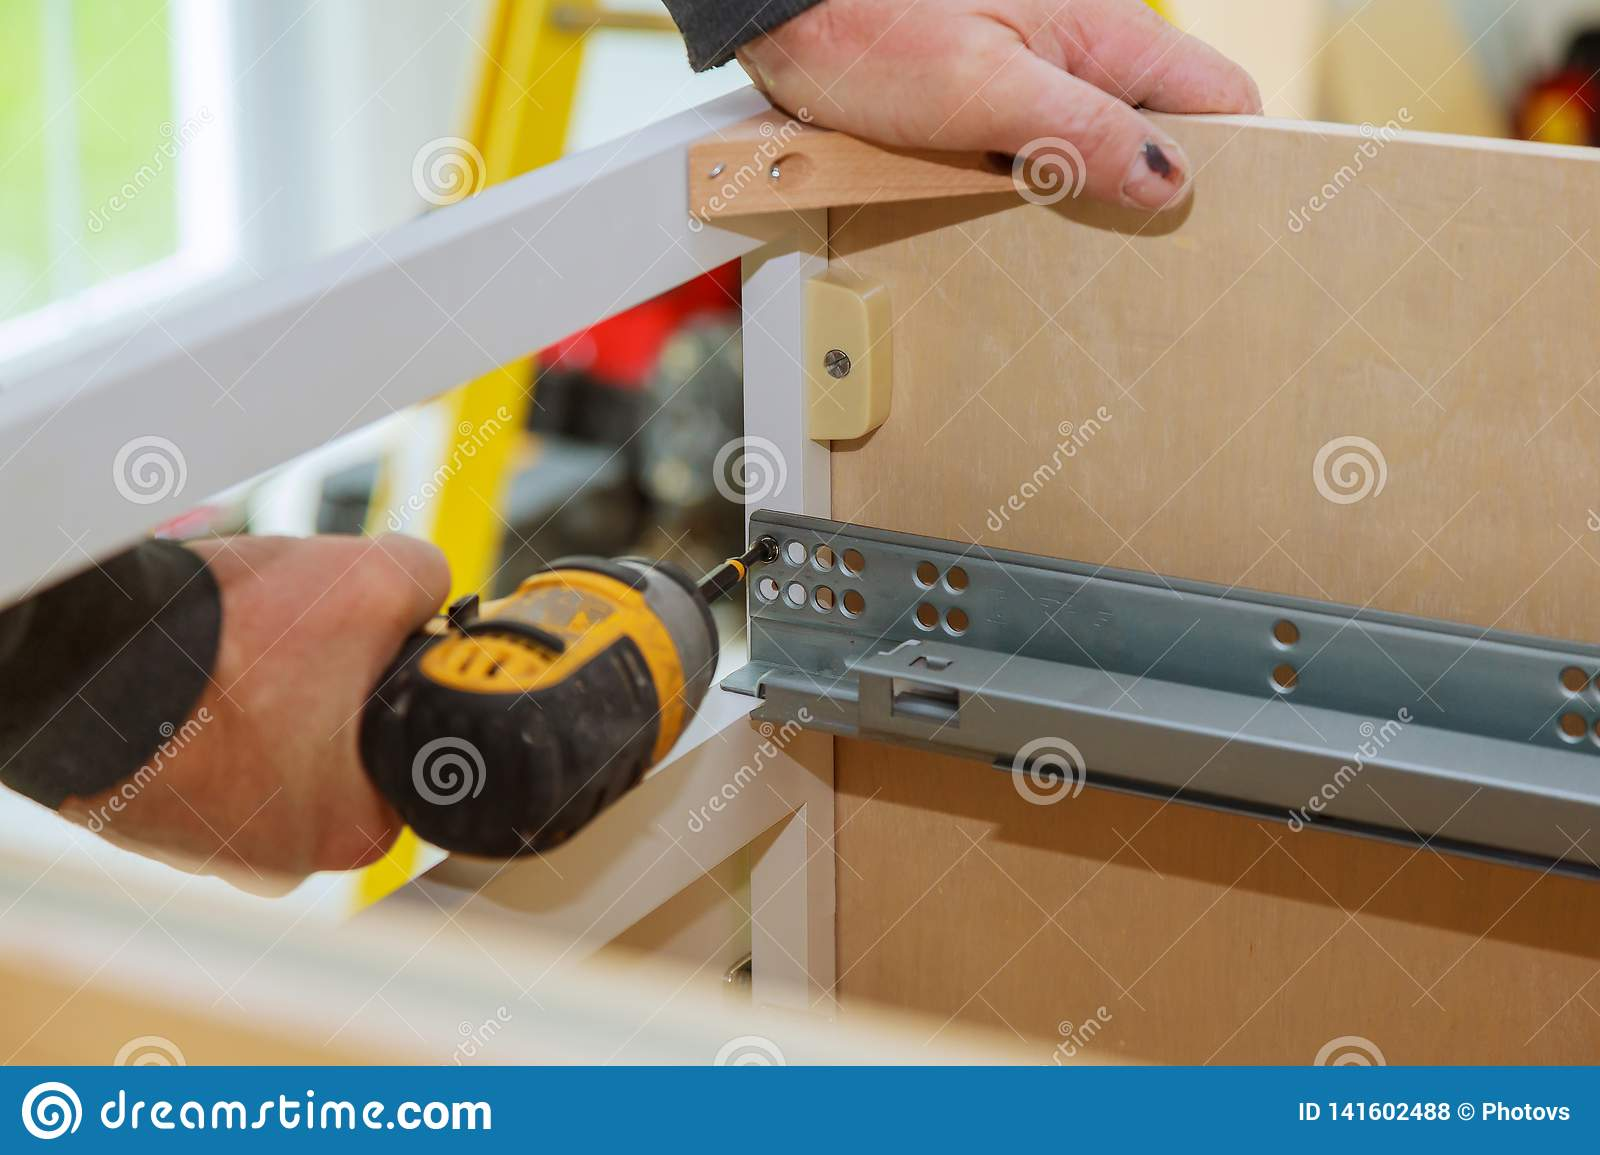 Mounting Furniture With Screwdriver Fixing Cabinet Drawers ...